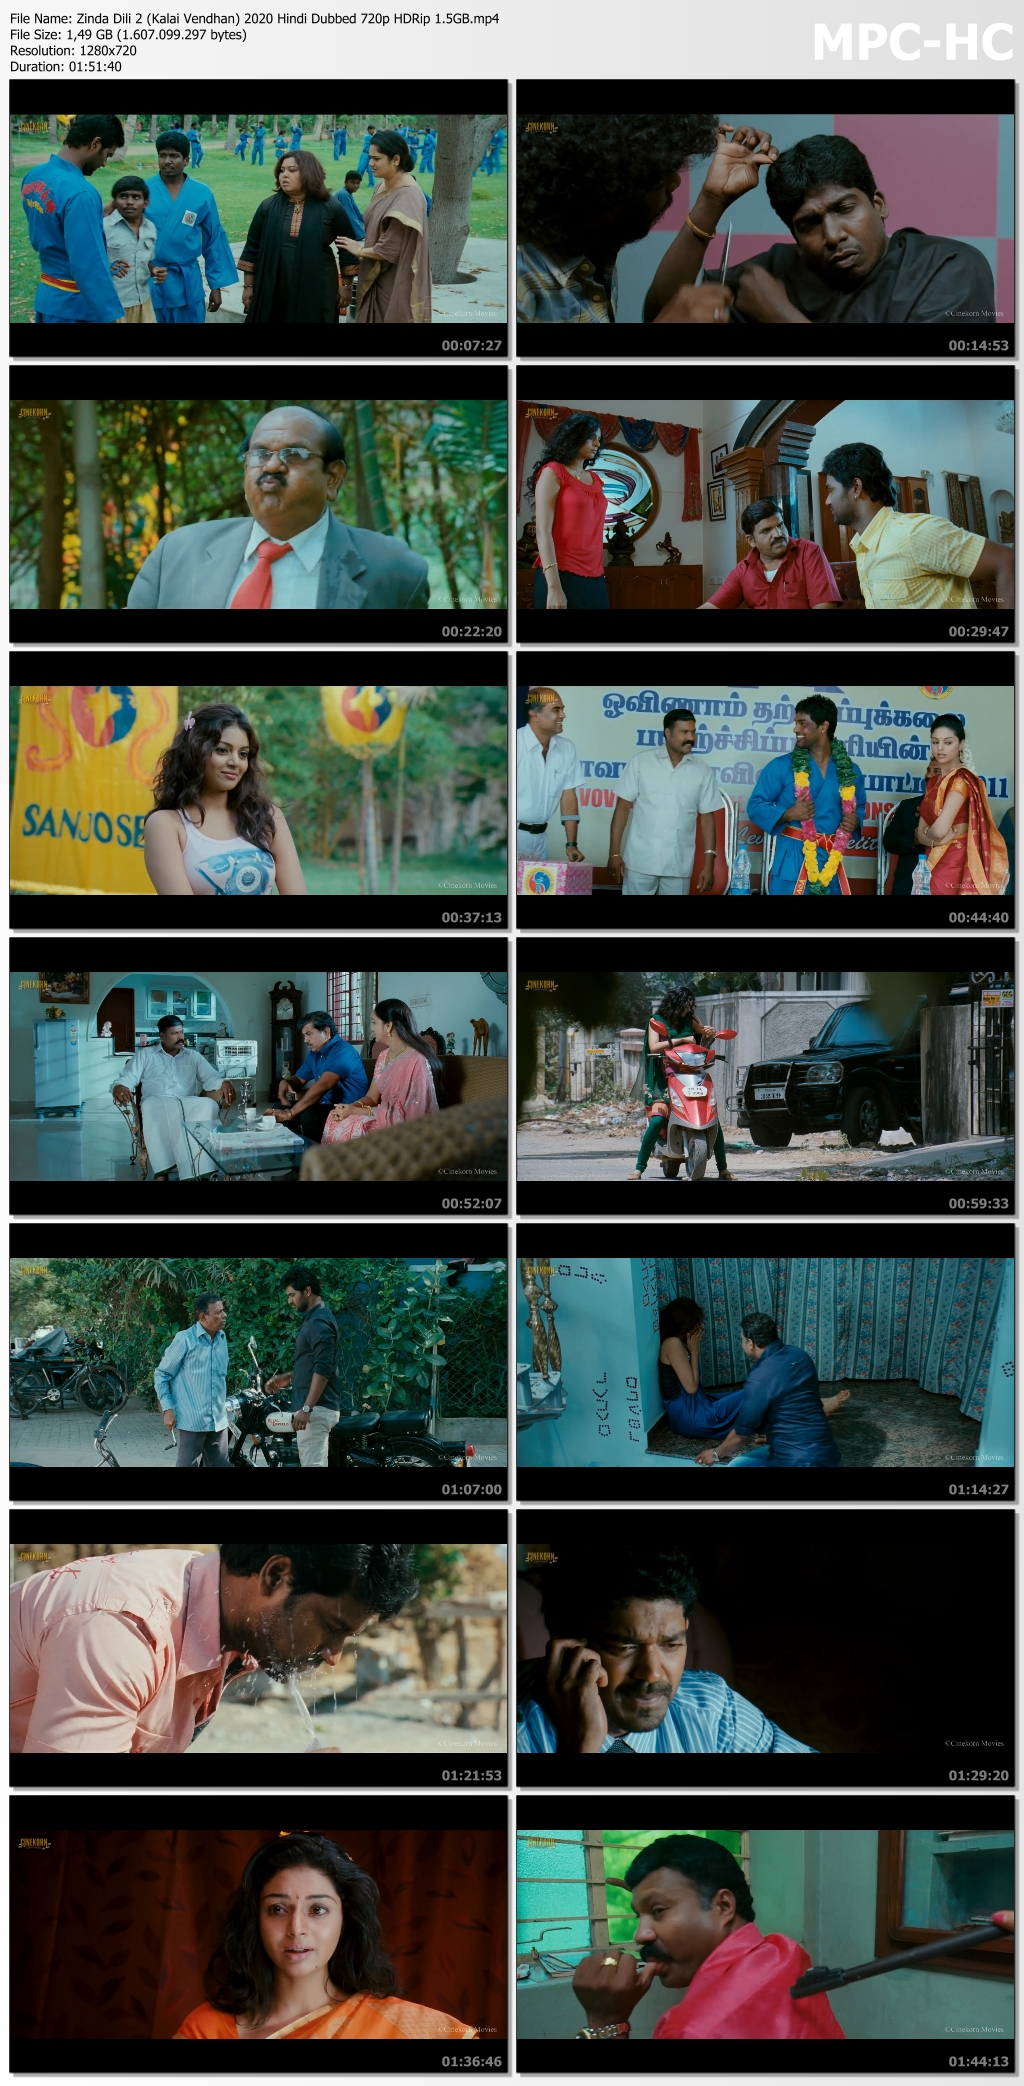 Zinda-Dili-2-Kalai-Vendhan-2020-Hindi-Dubbed-720p-HDRip-1-5-GB-mp4-thumbs